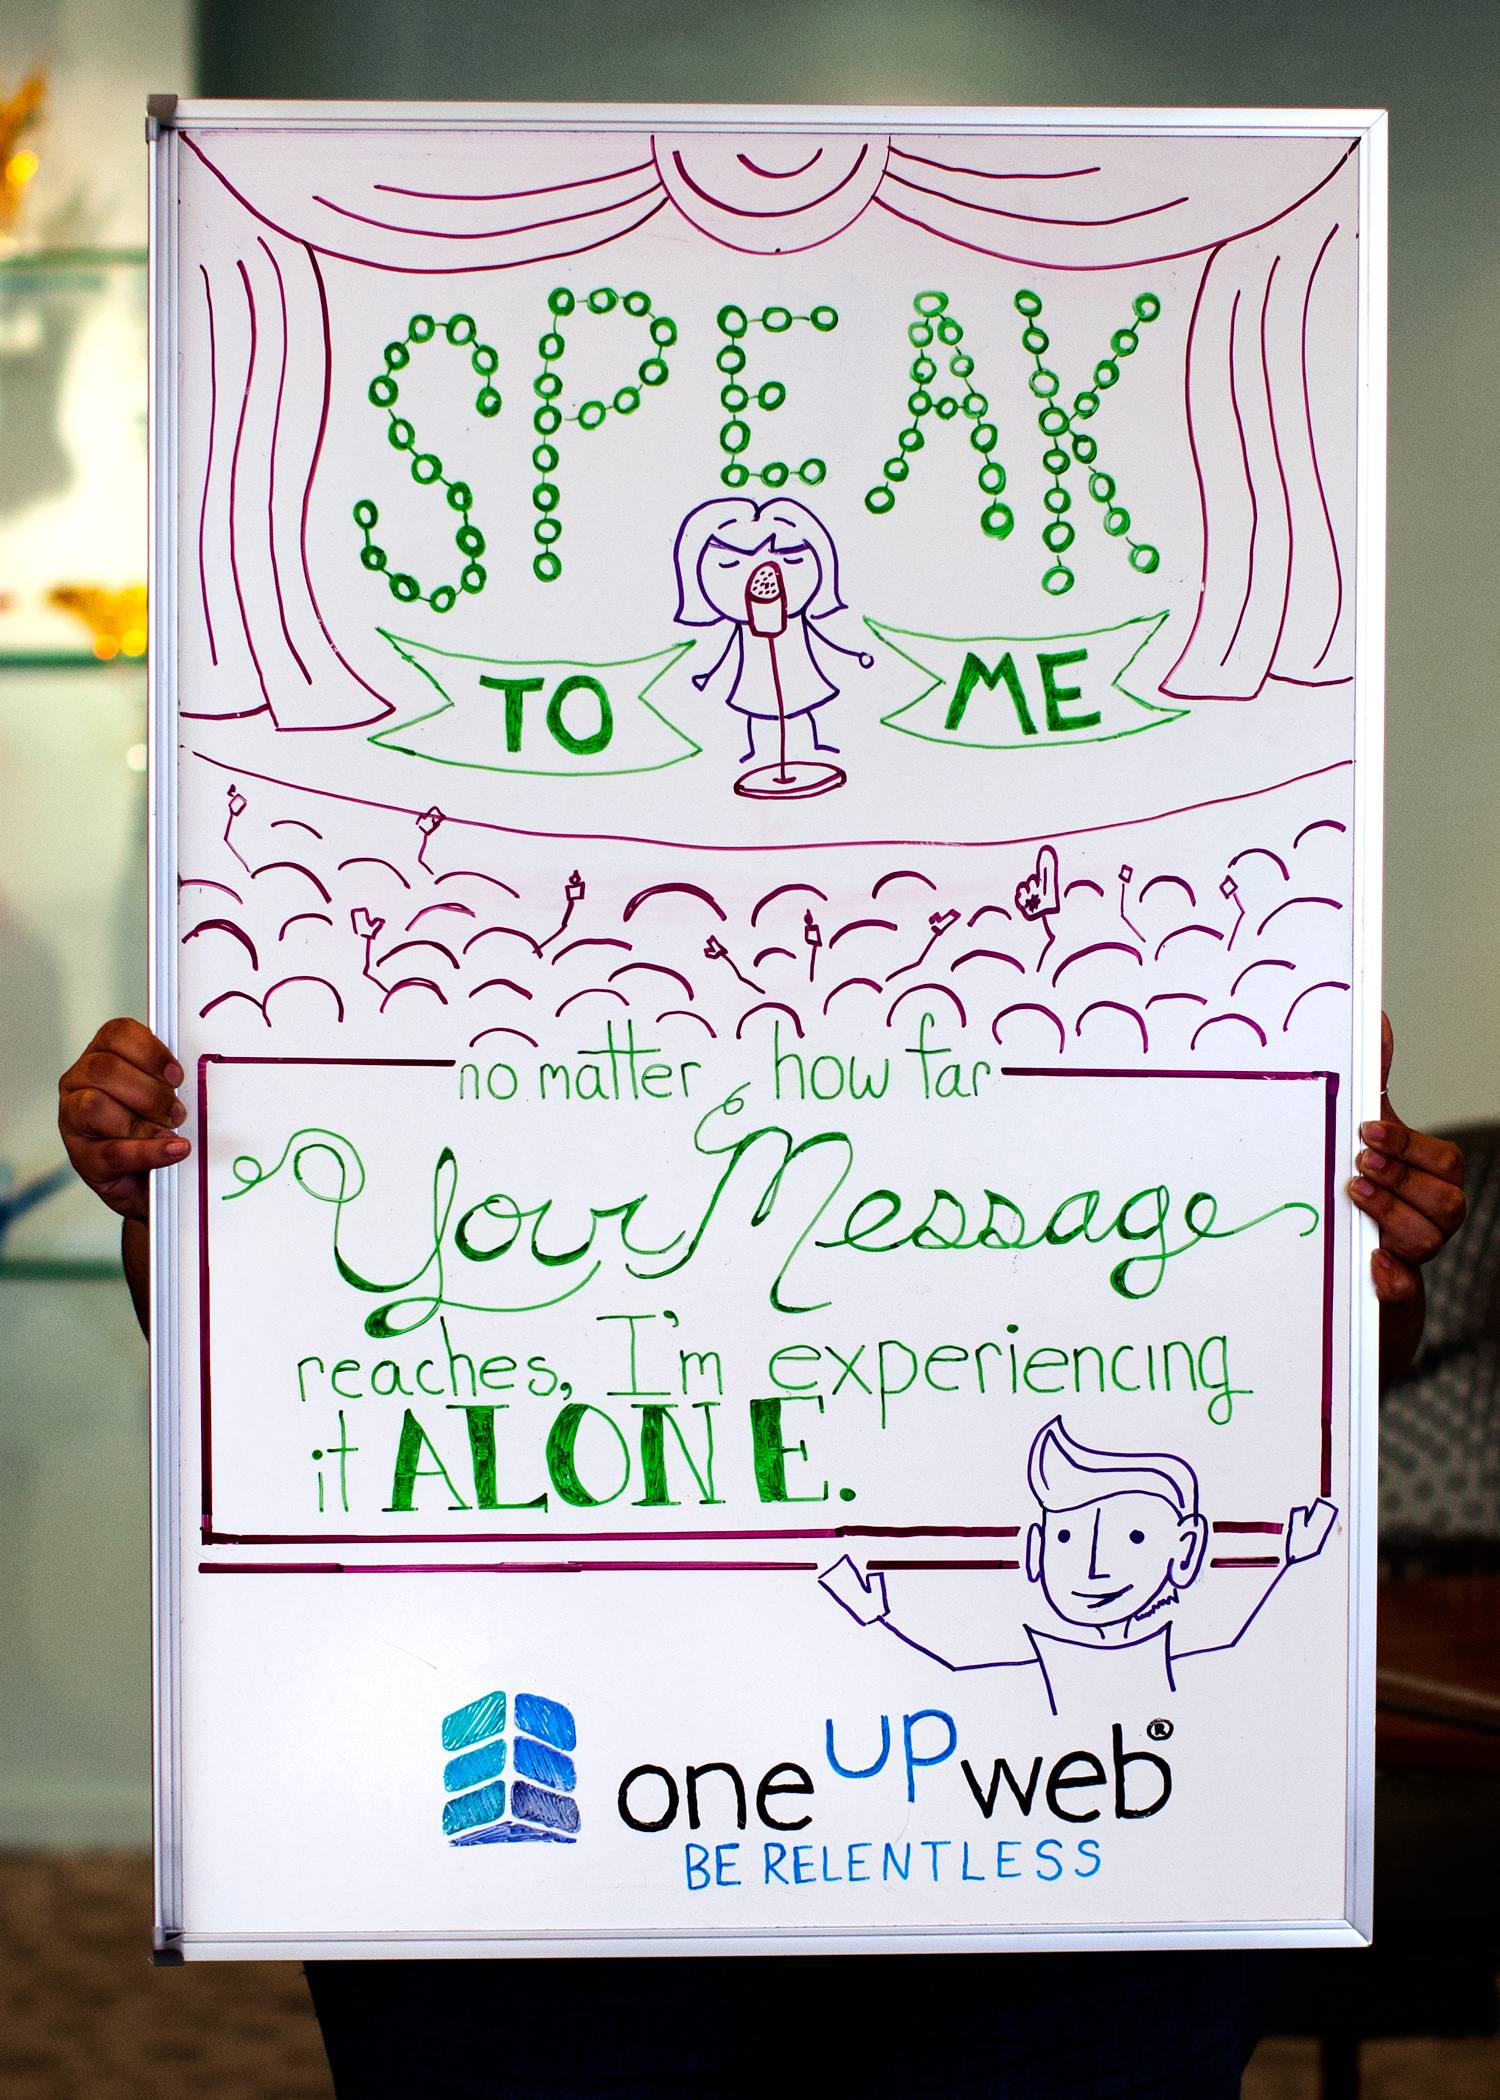 Tip of the week: Speak to Me; No Matter How Far Your Message Reaches, I'm Experiencing It Alone